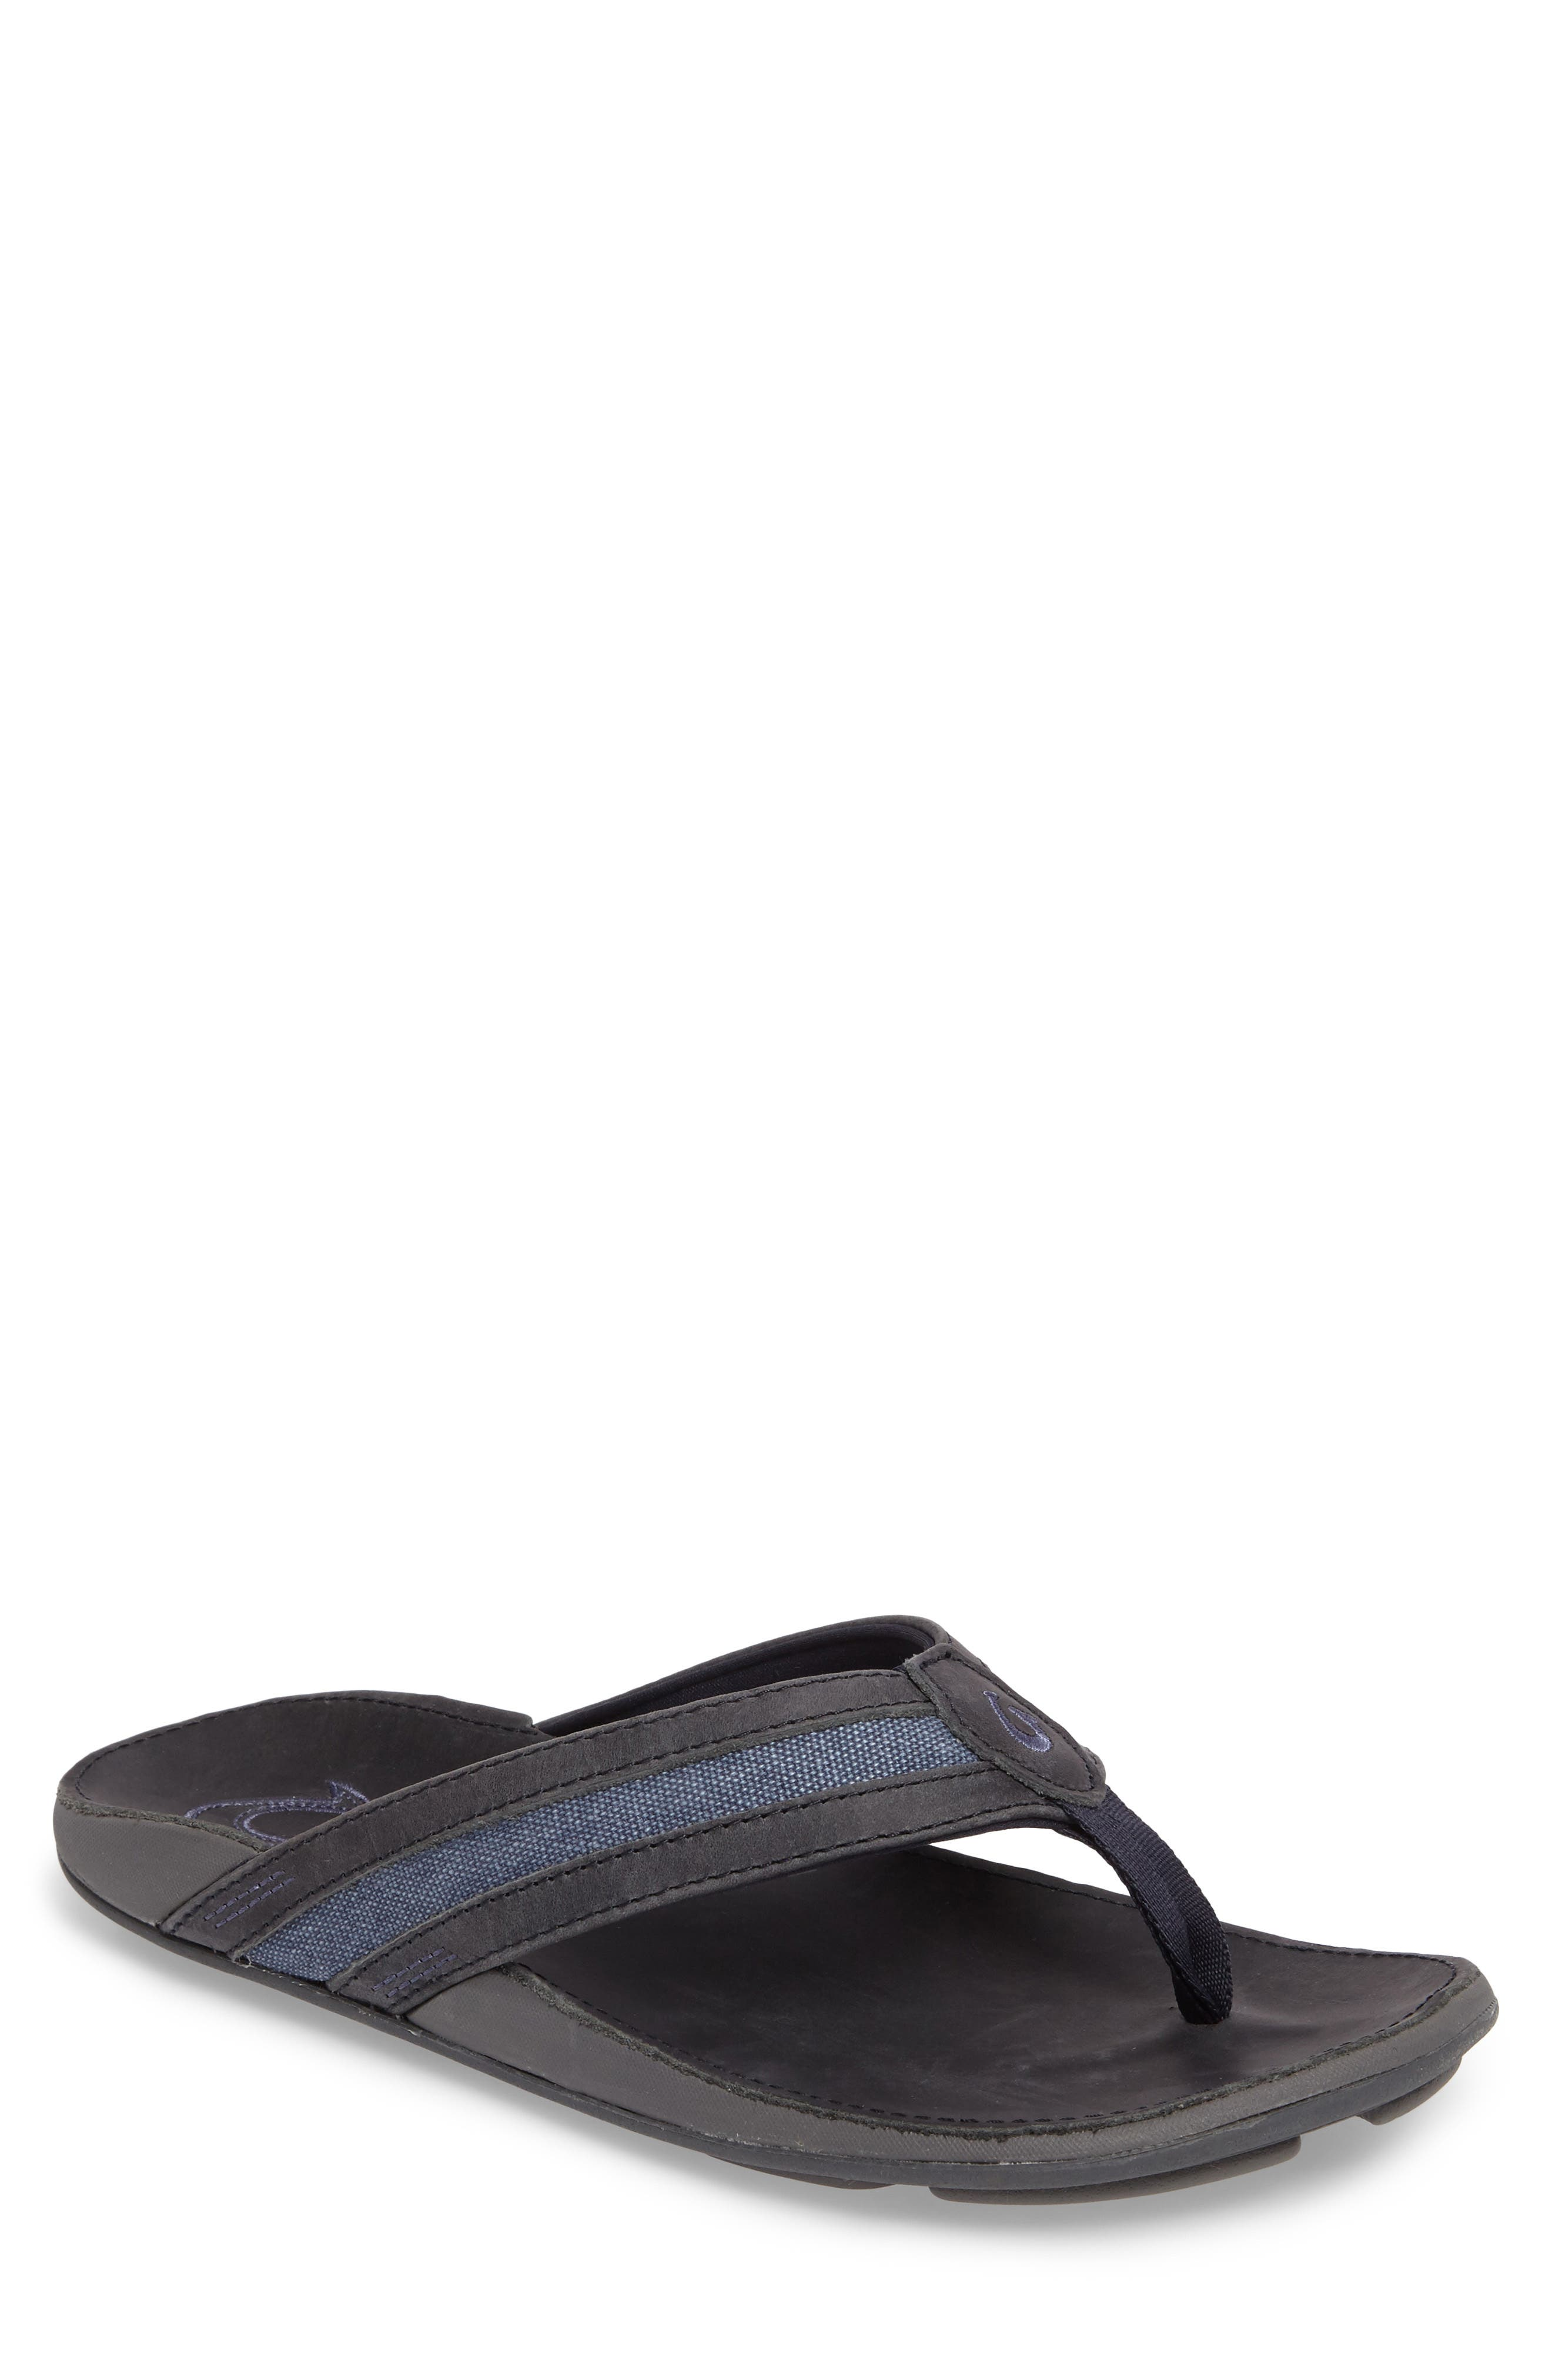 Ikoi Flip Flop,                         Main,                         color, Trench Blue Leather